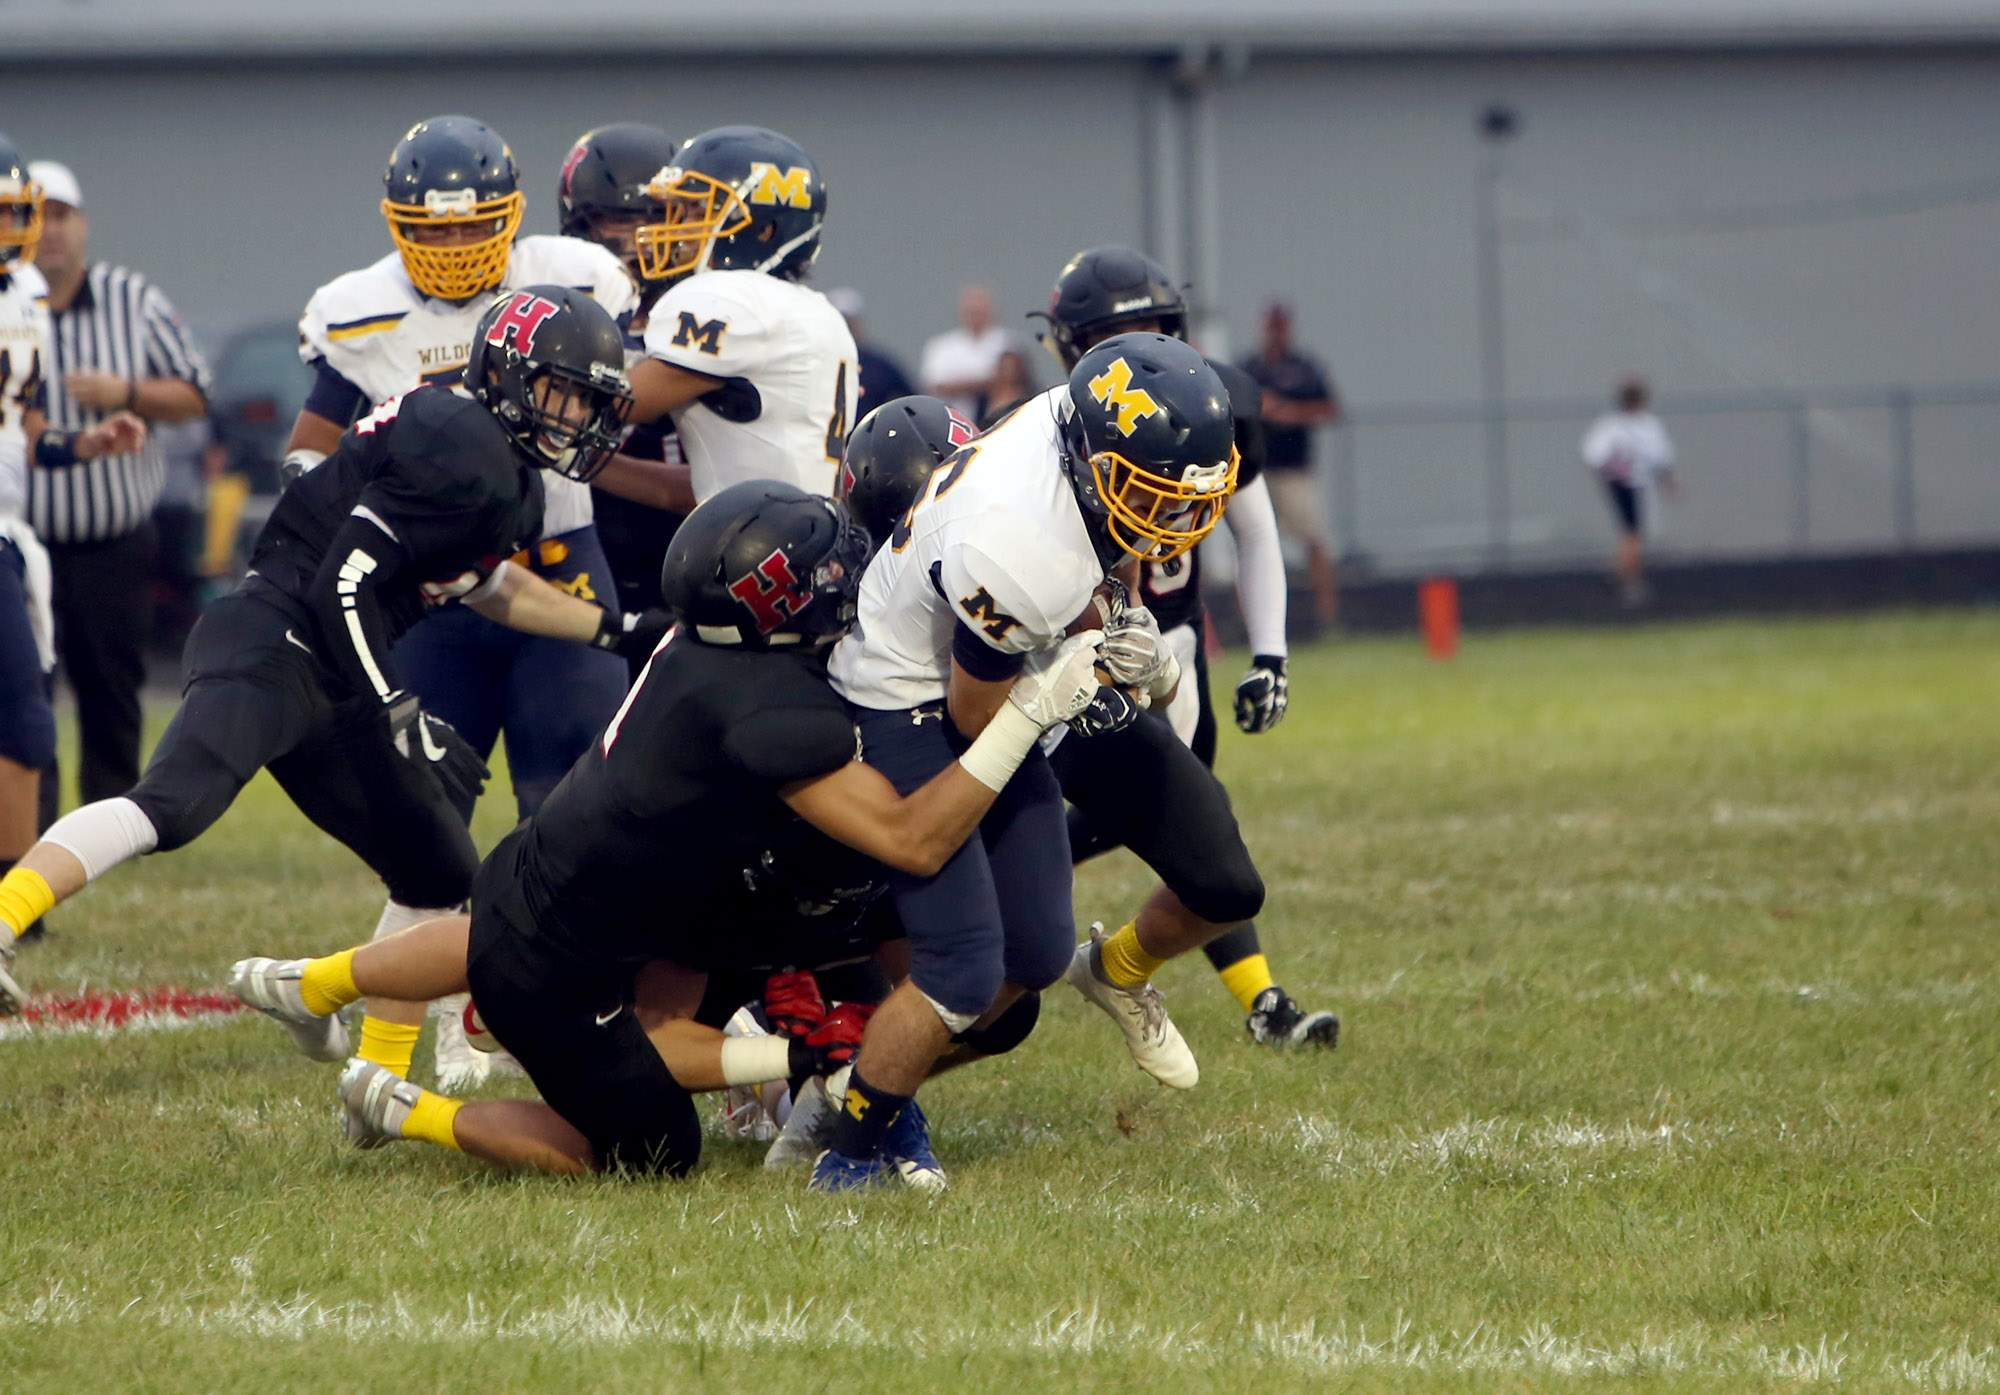 More pictures from Marion's game against Highland.